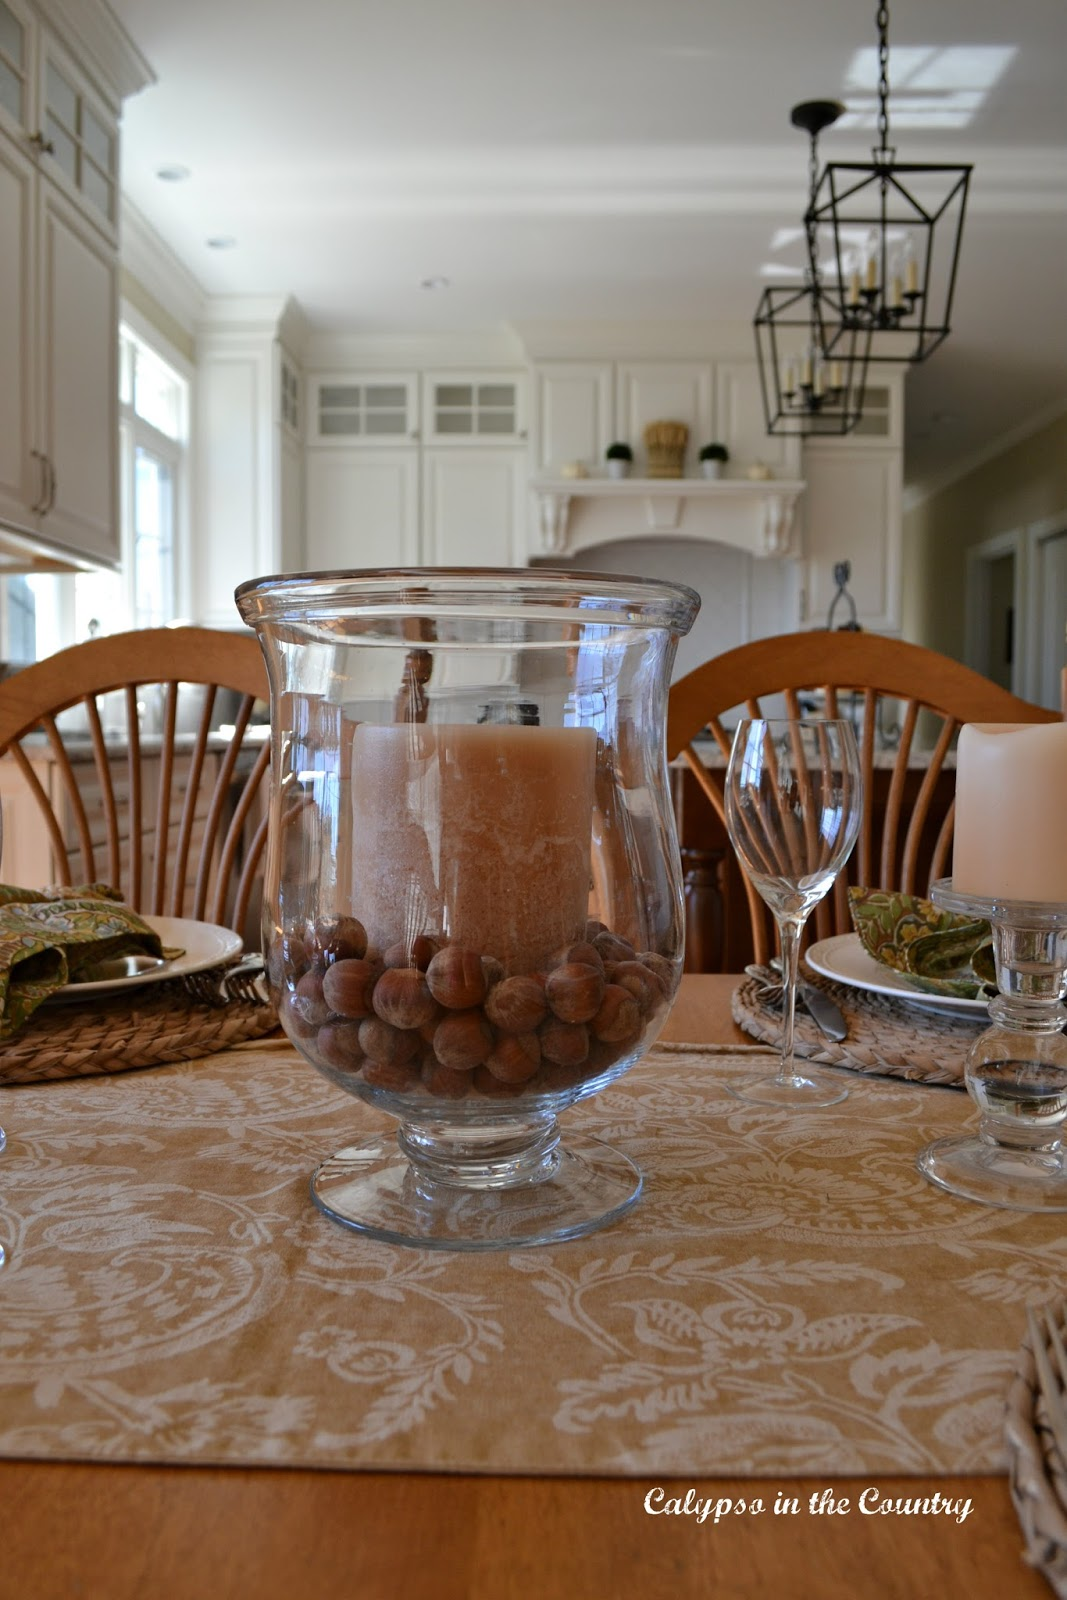 Fall Table with Candle and Hazelnuts for decor